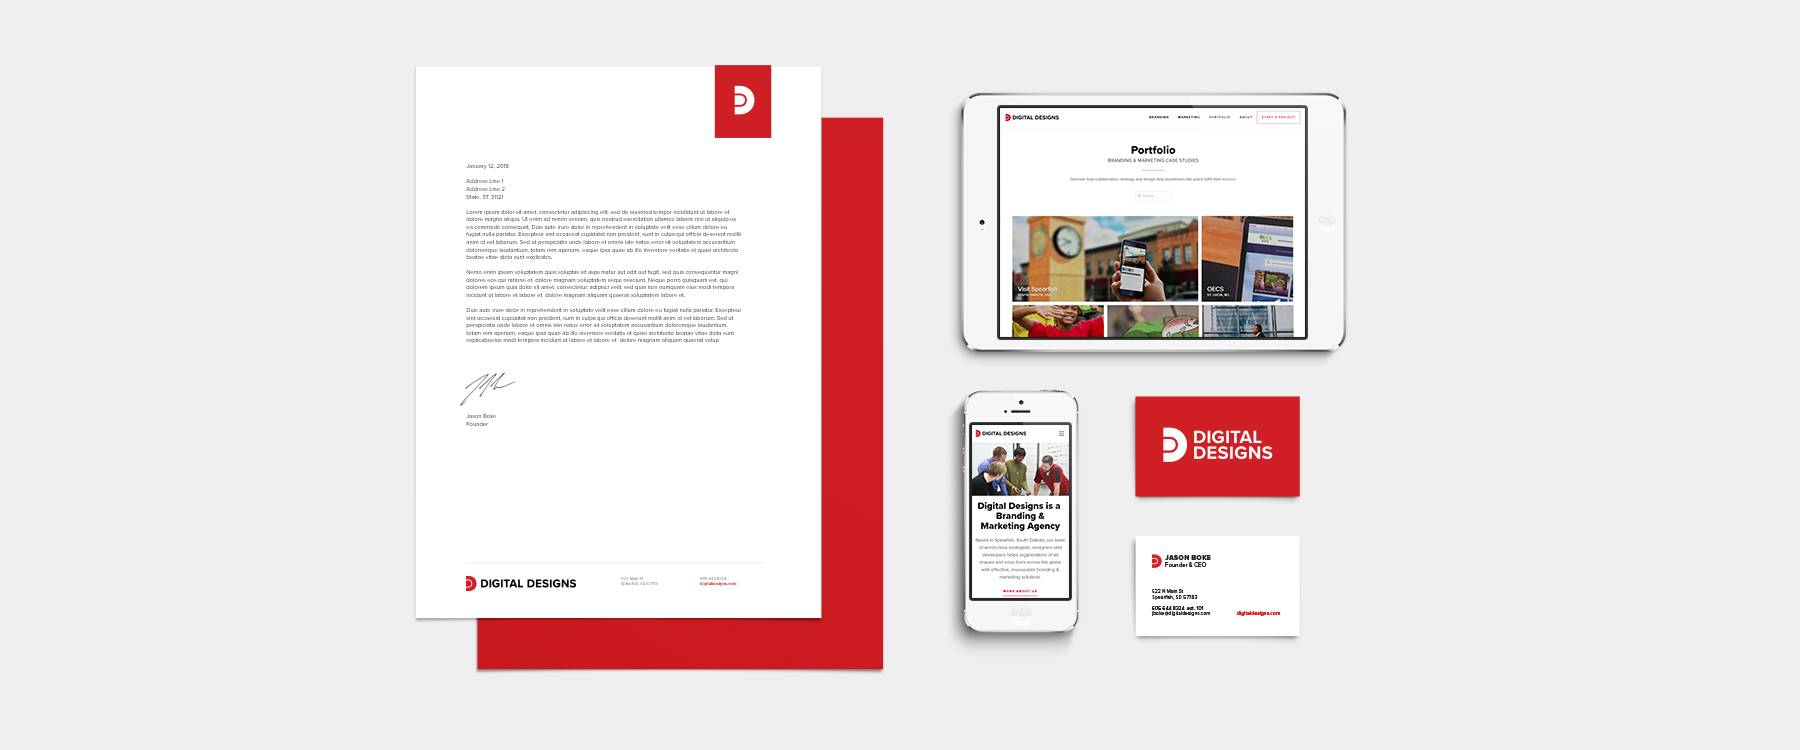 Digital Designs' New Brand Identity